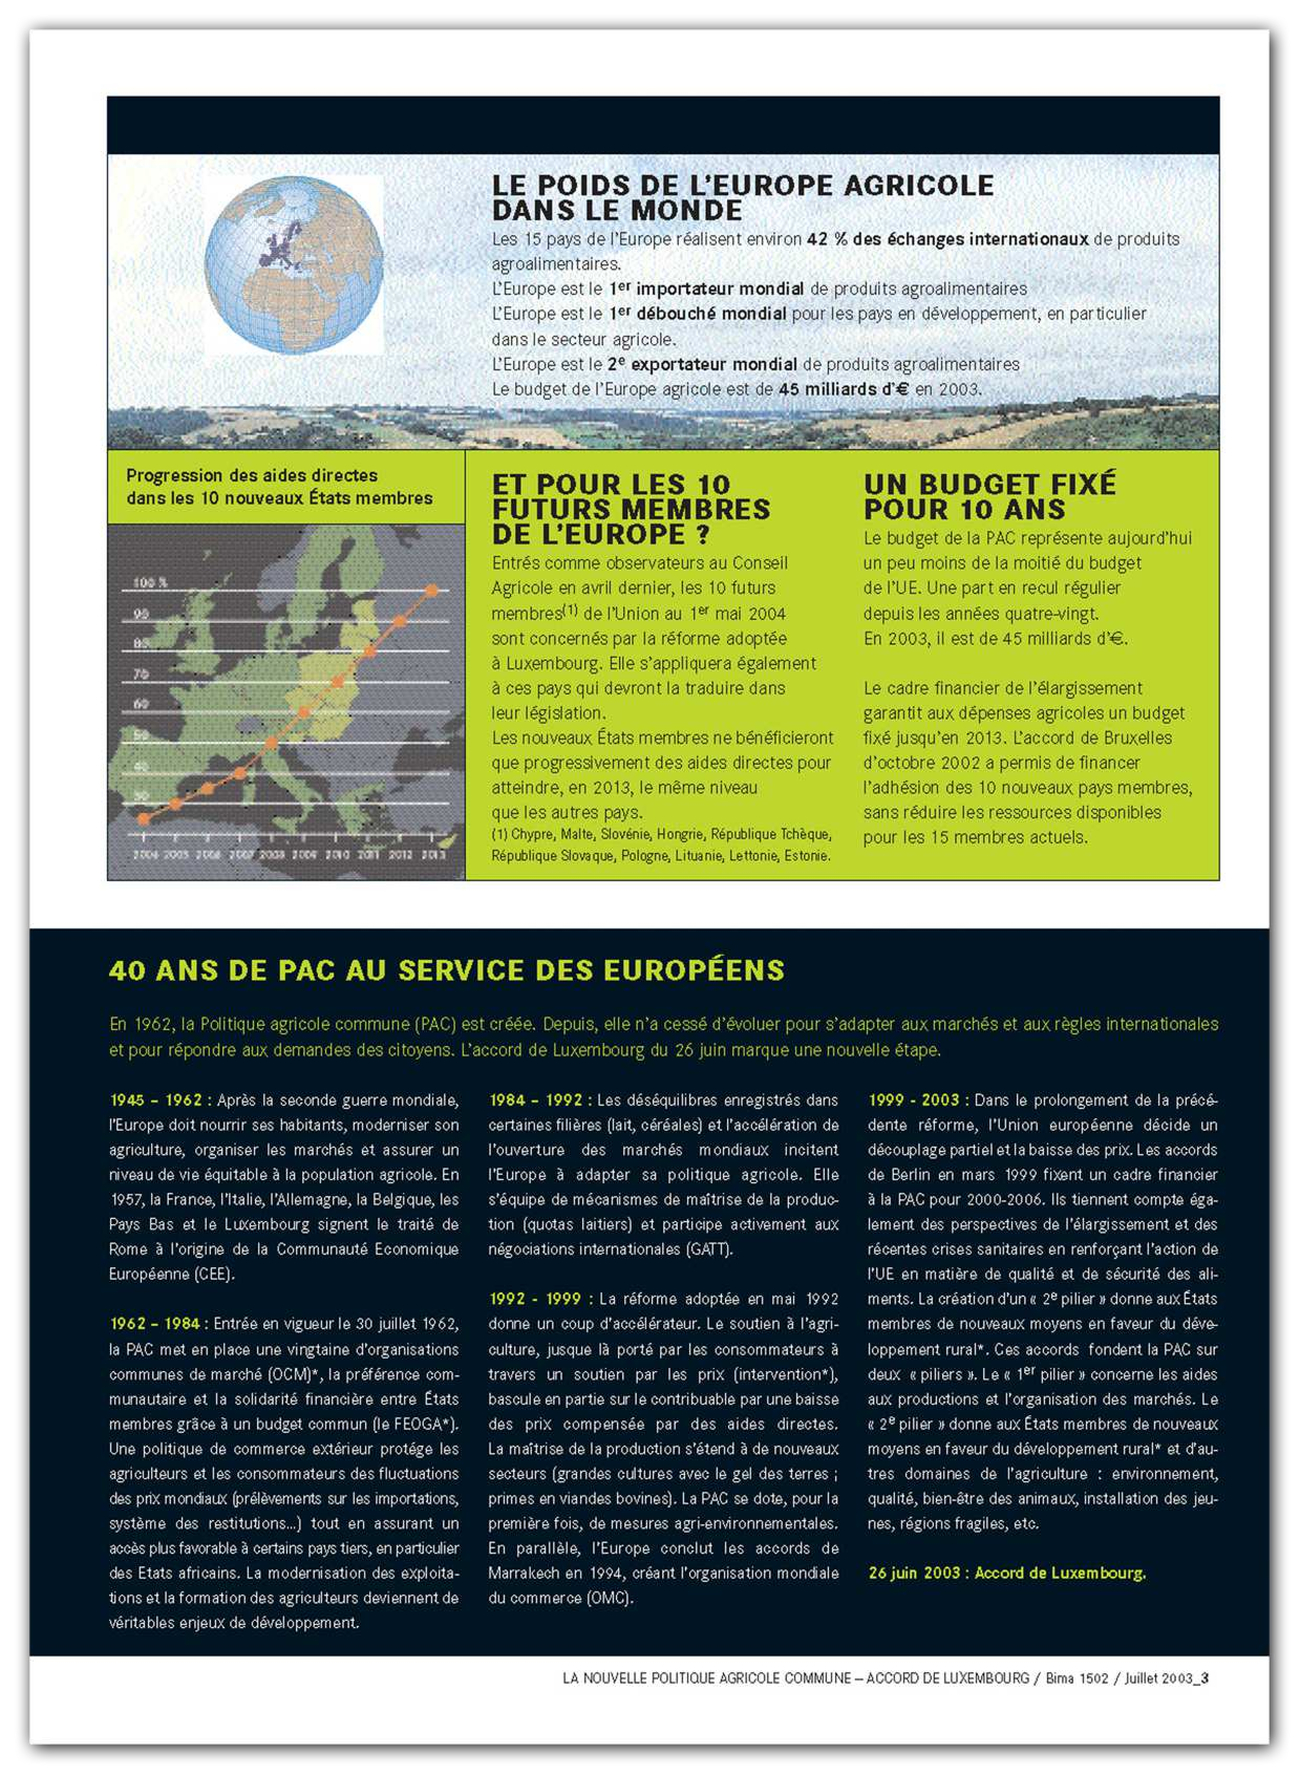 Brochure Published By The French Ministry Of Agriculture On